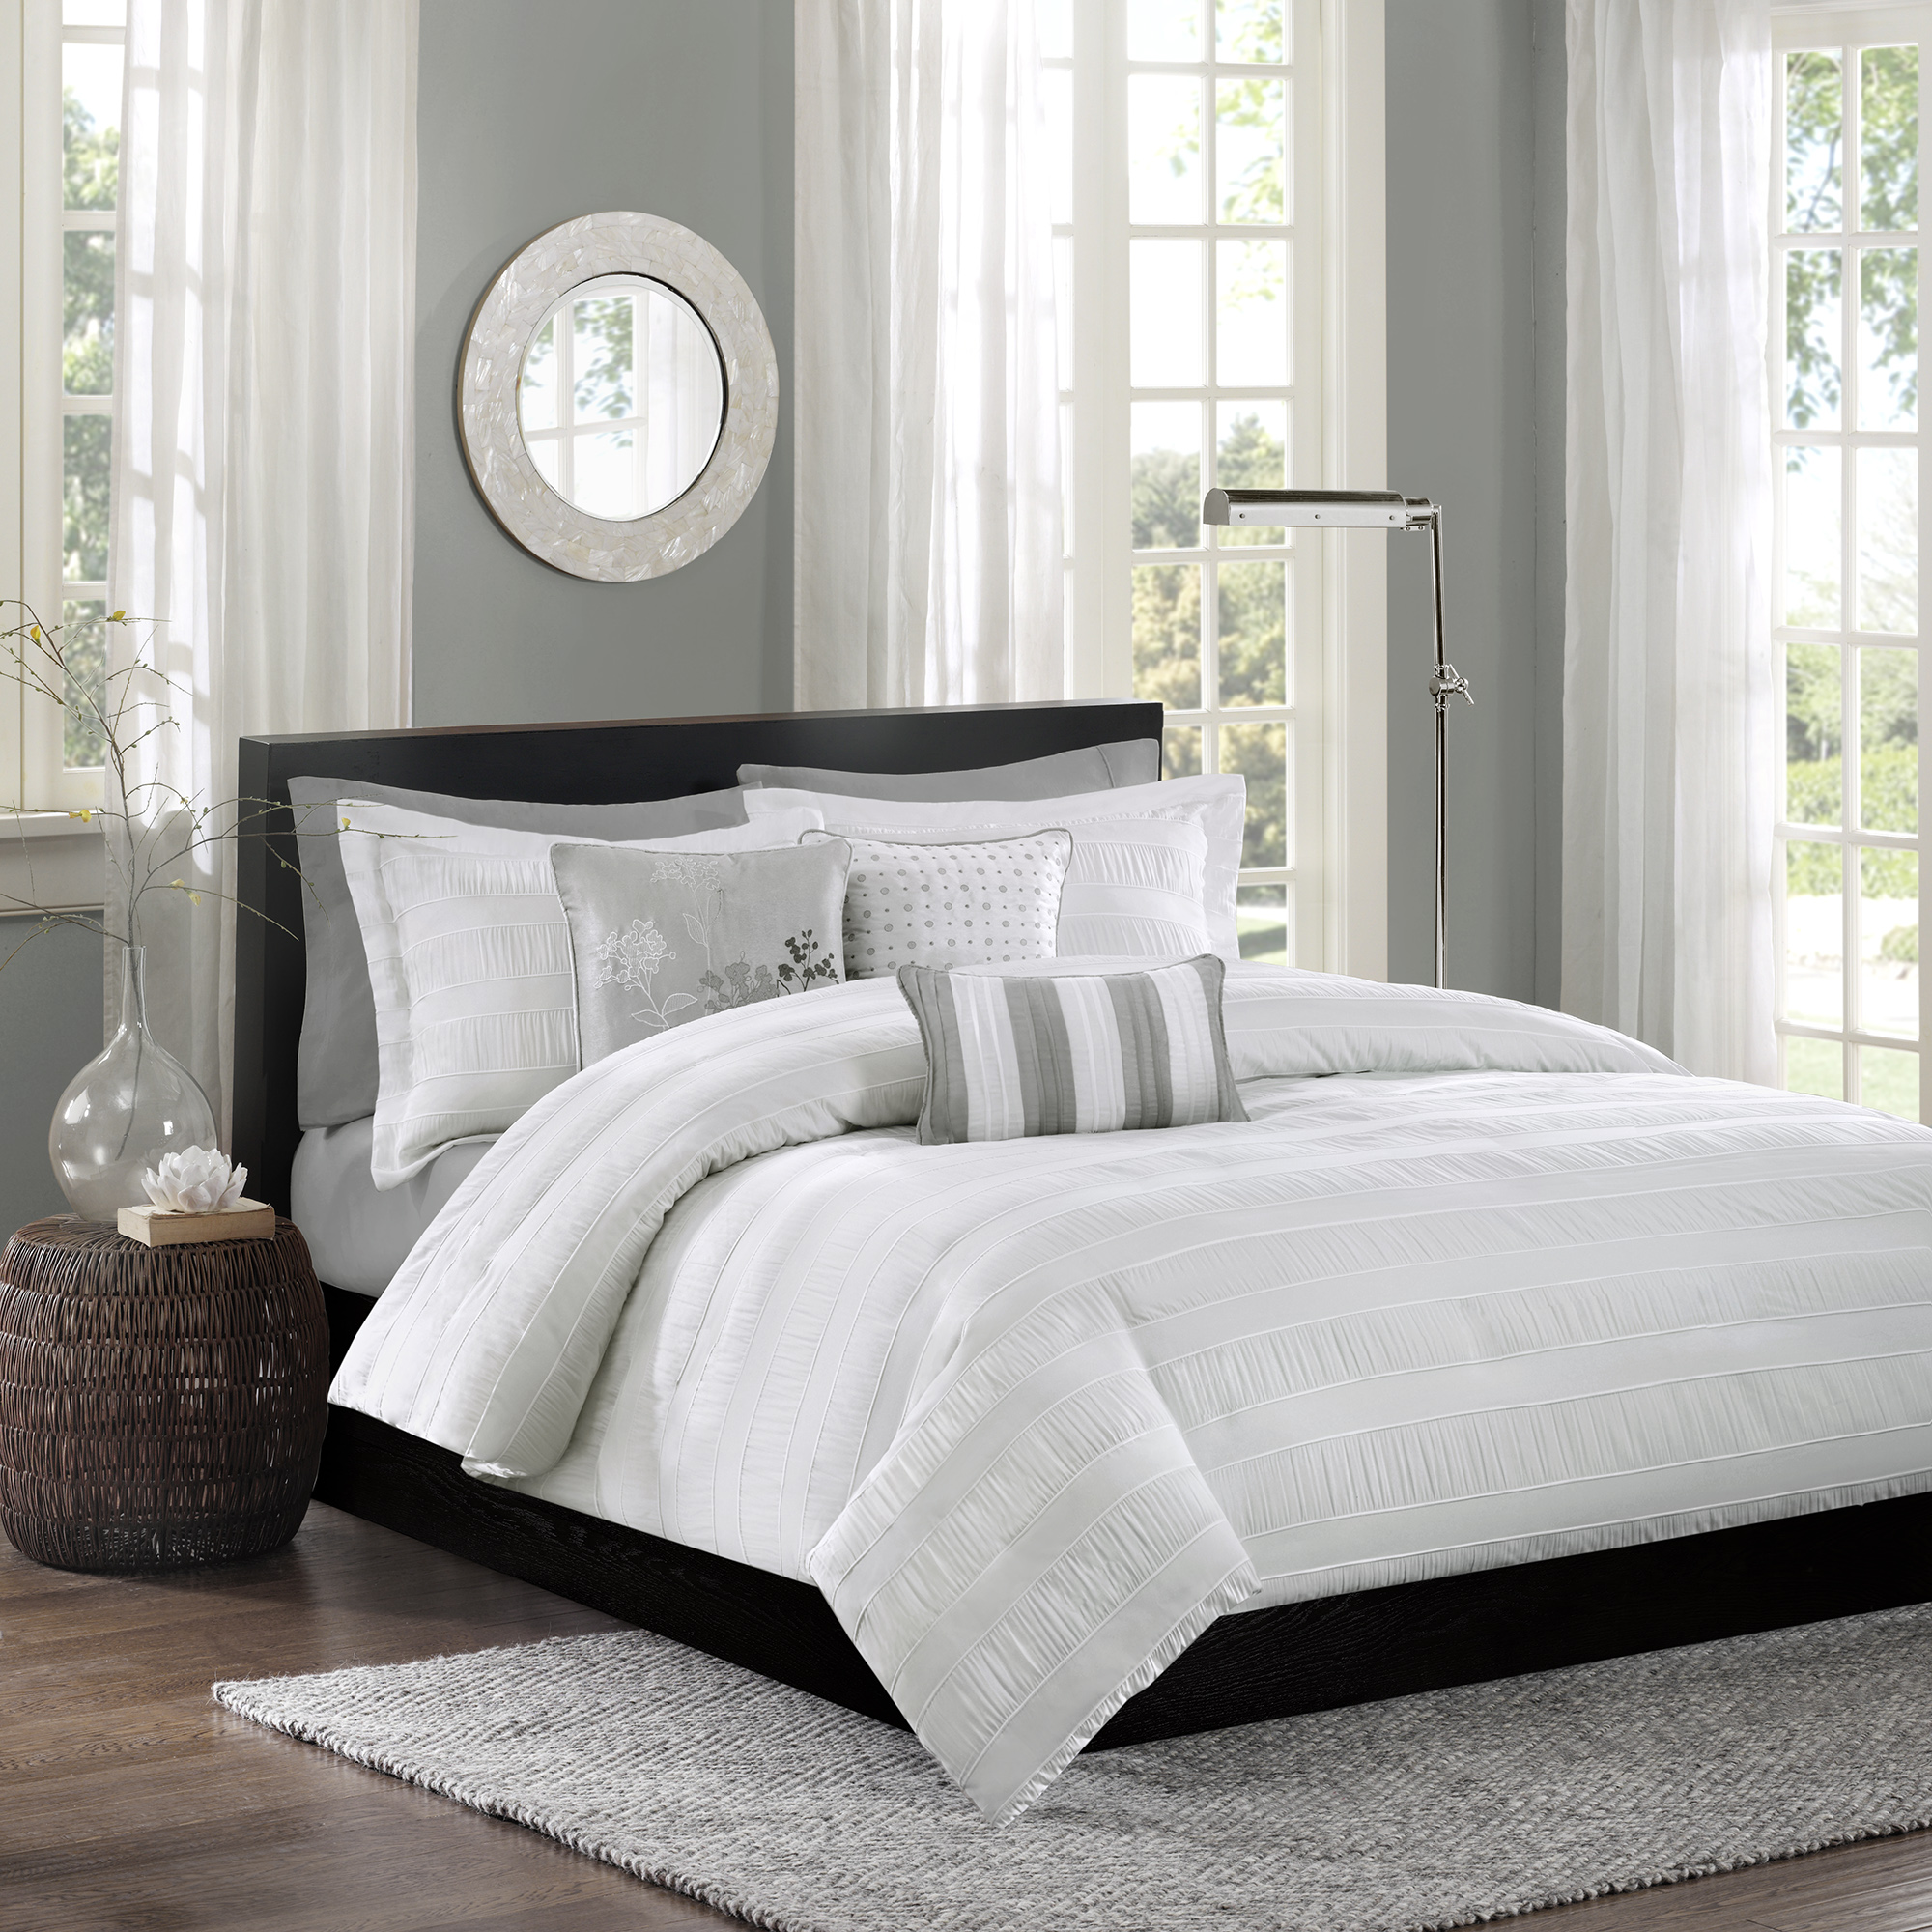 Home Essence Cullen Duvet Cover Set